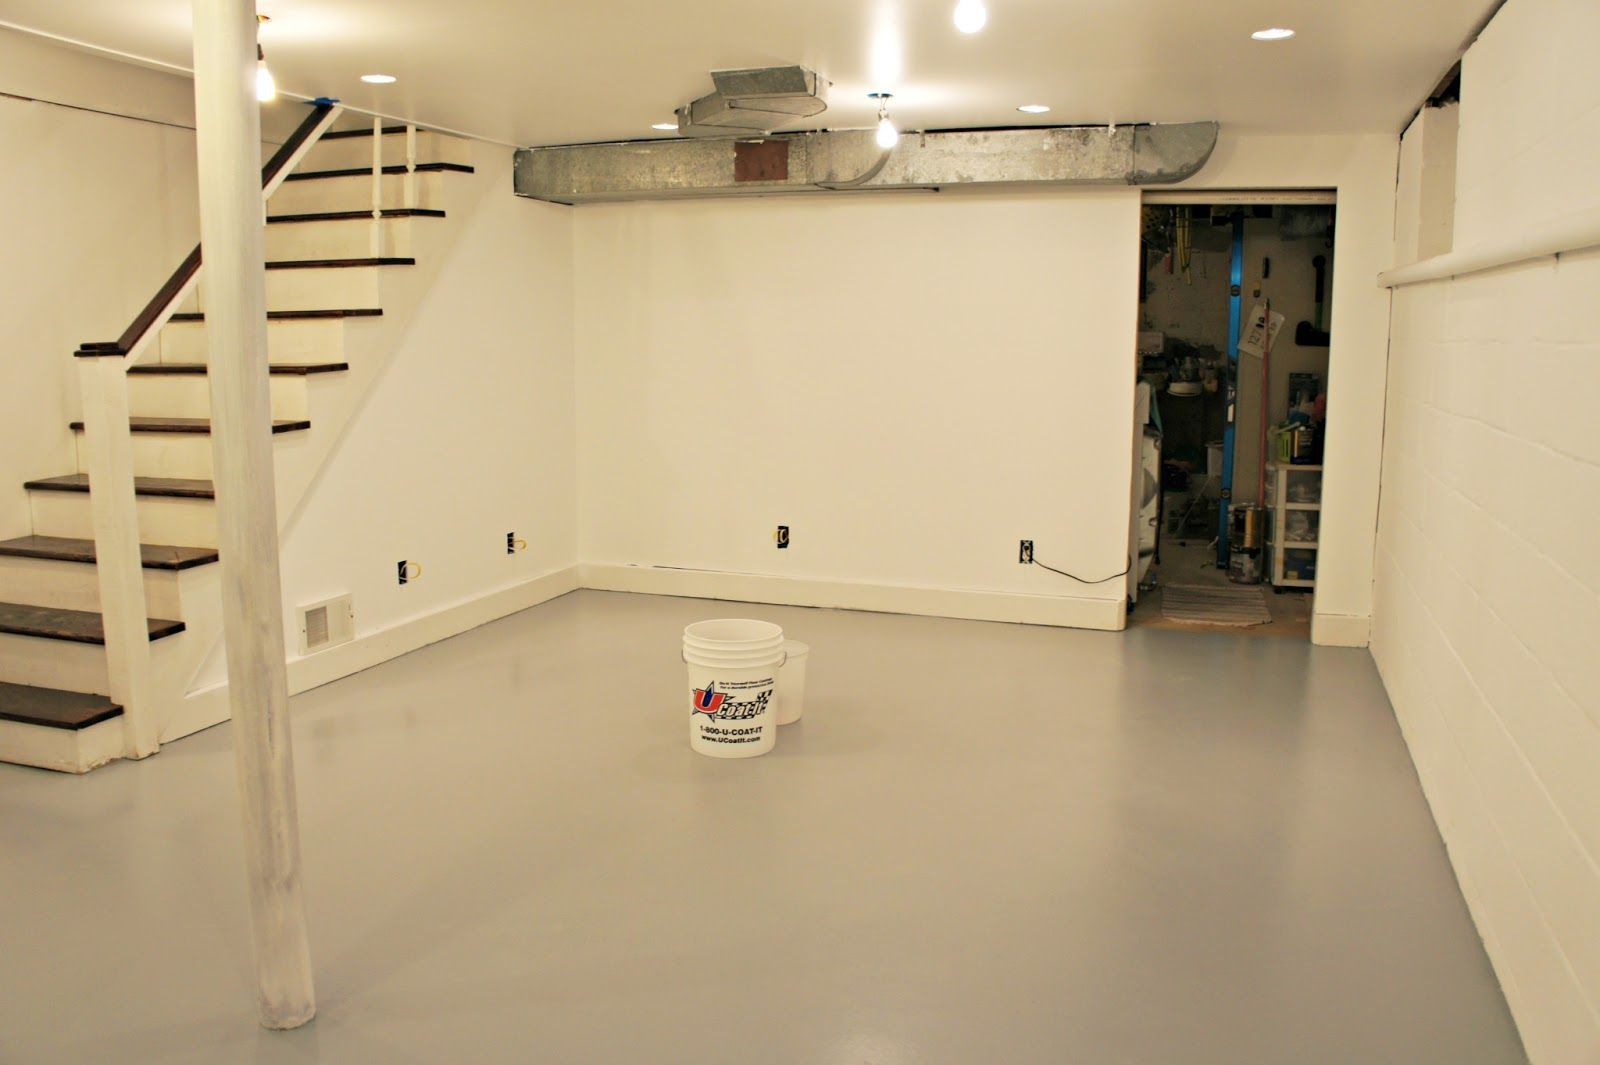 Solvent Based Epoxy Paint For Basement Floor Stairs With Black Wood Panels Best Flooring For Basement Basement Flooring Options Painting Basement Floors